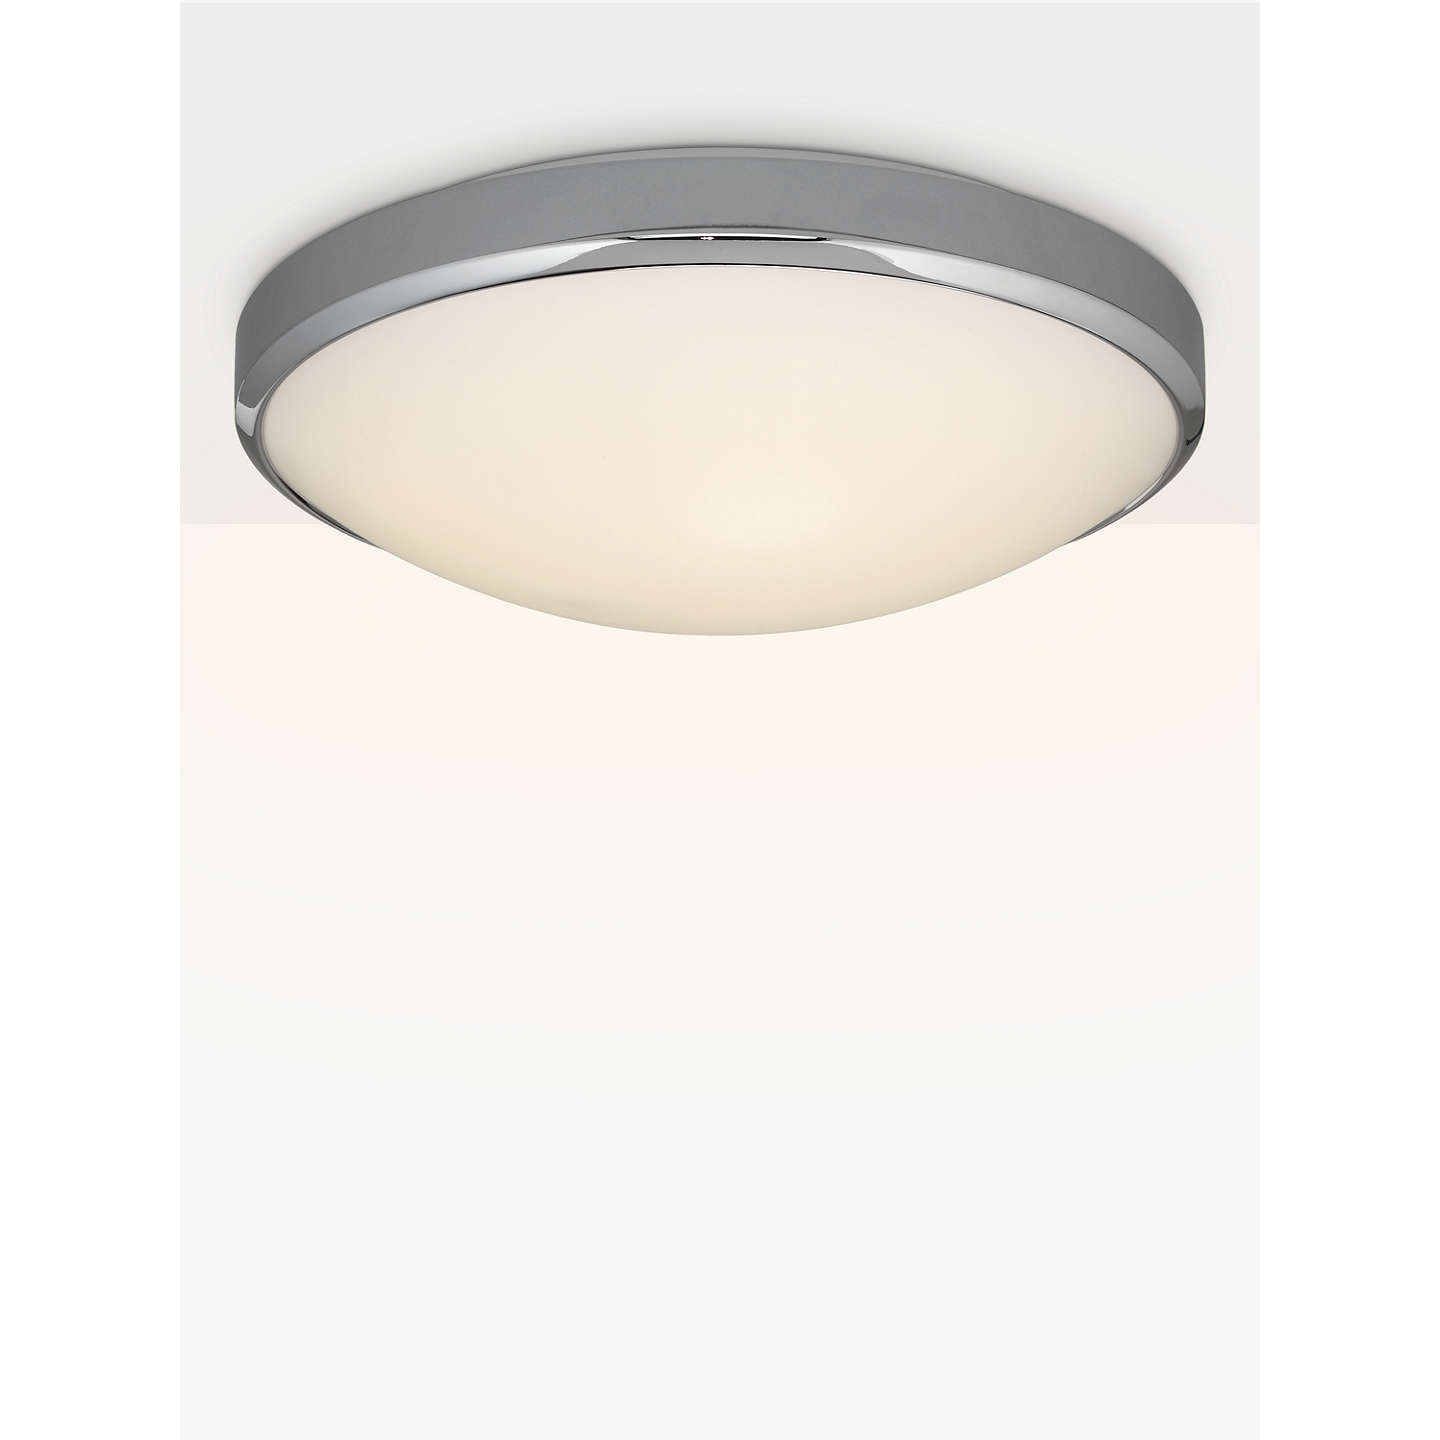 Astro osaka led bathroom light whitechrome at john lewis buyastro osaka led bathroom light whitechrome online at johnlewis aloadofball